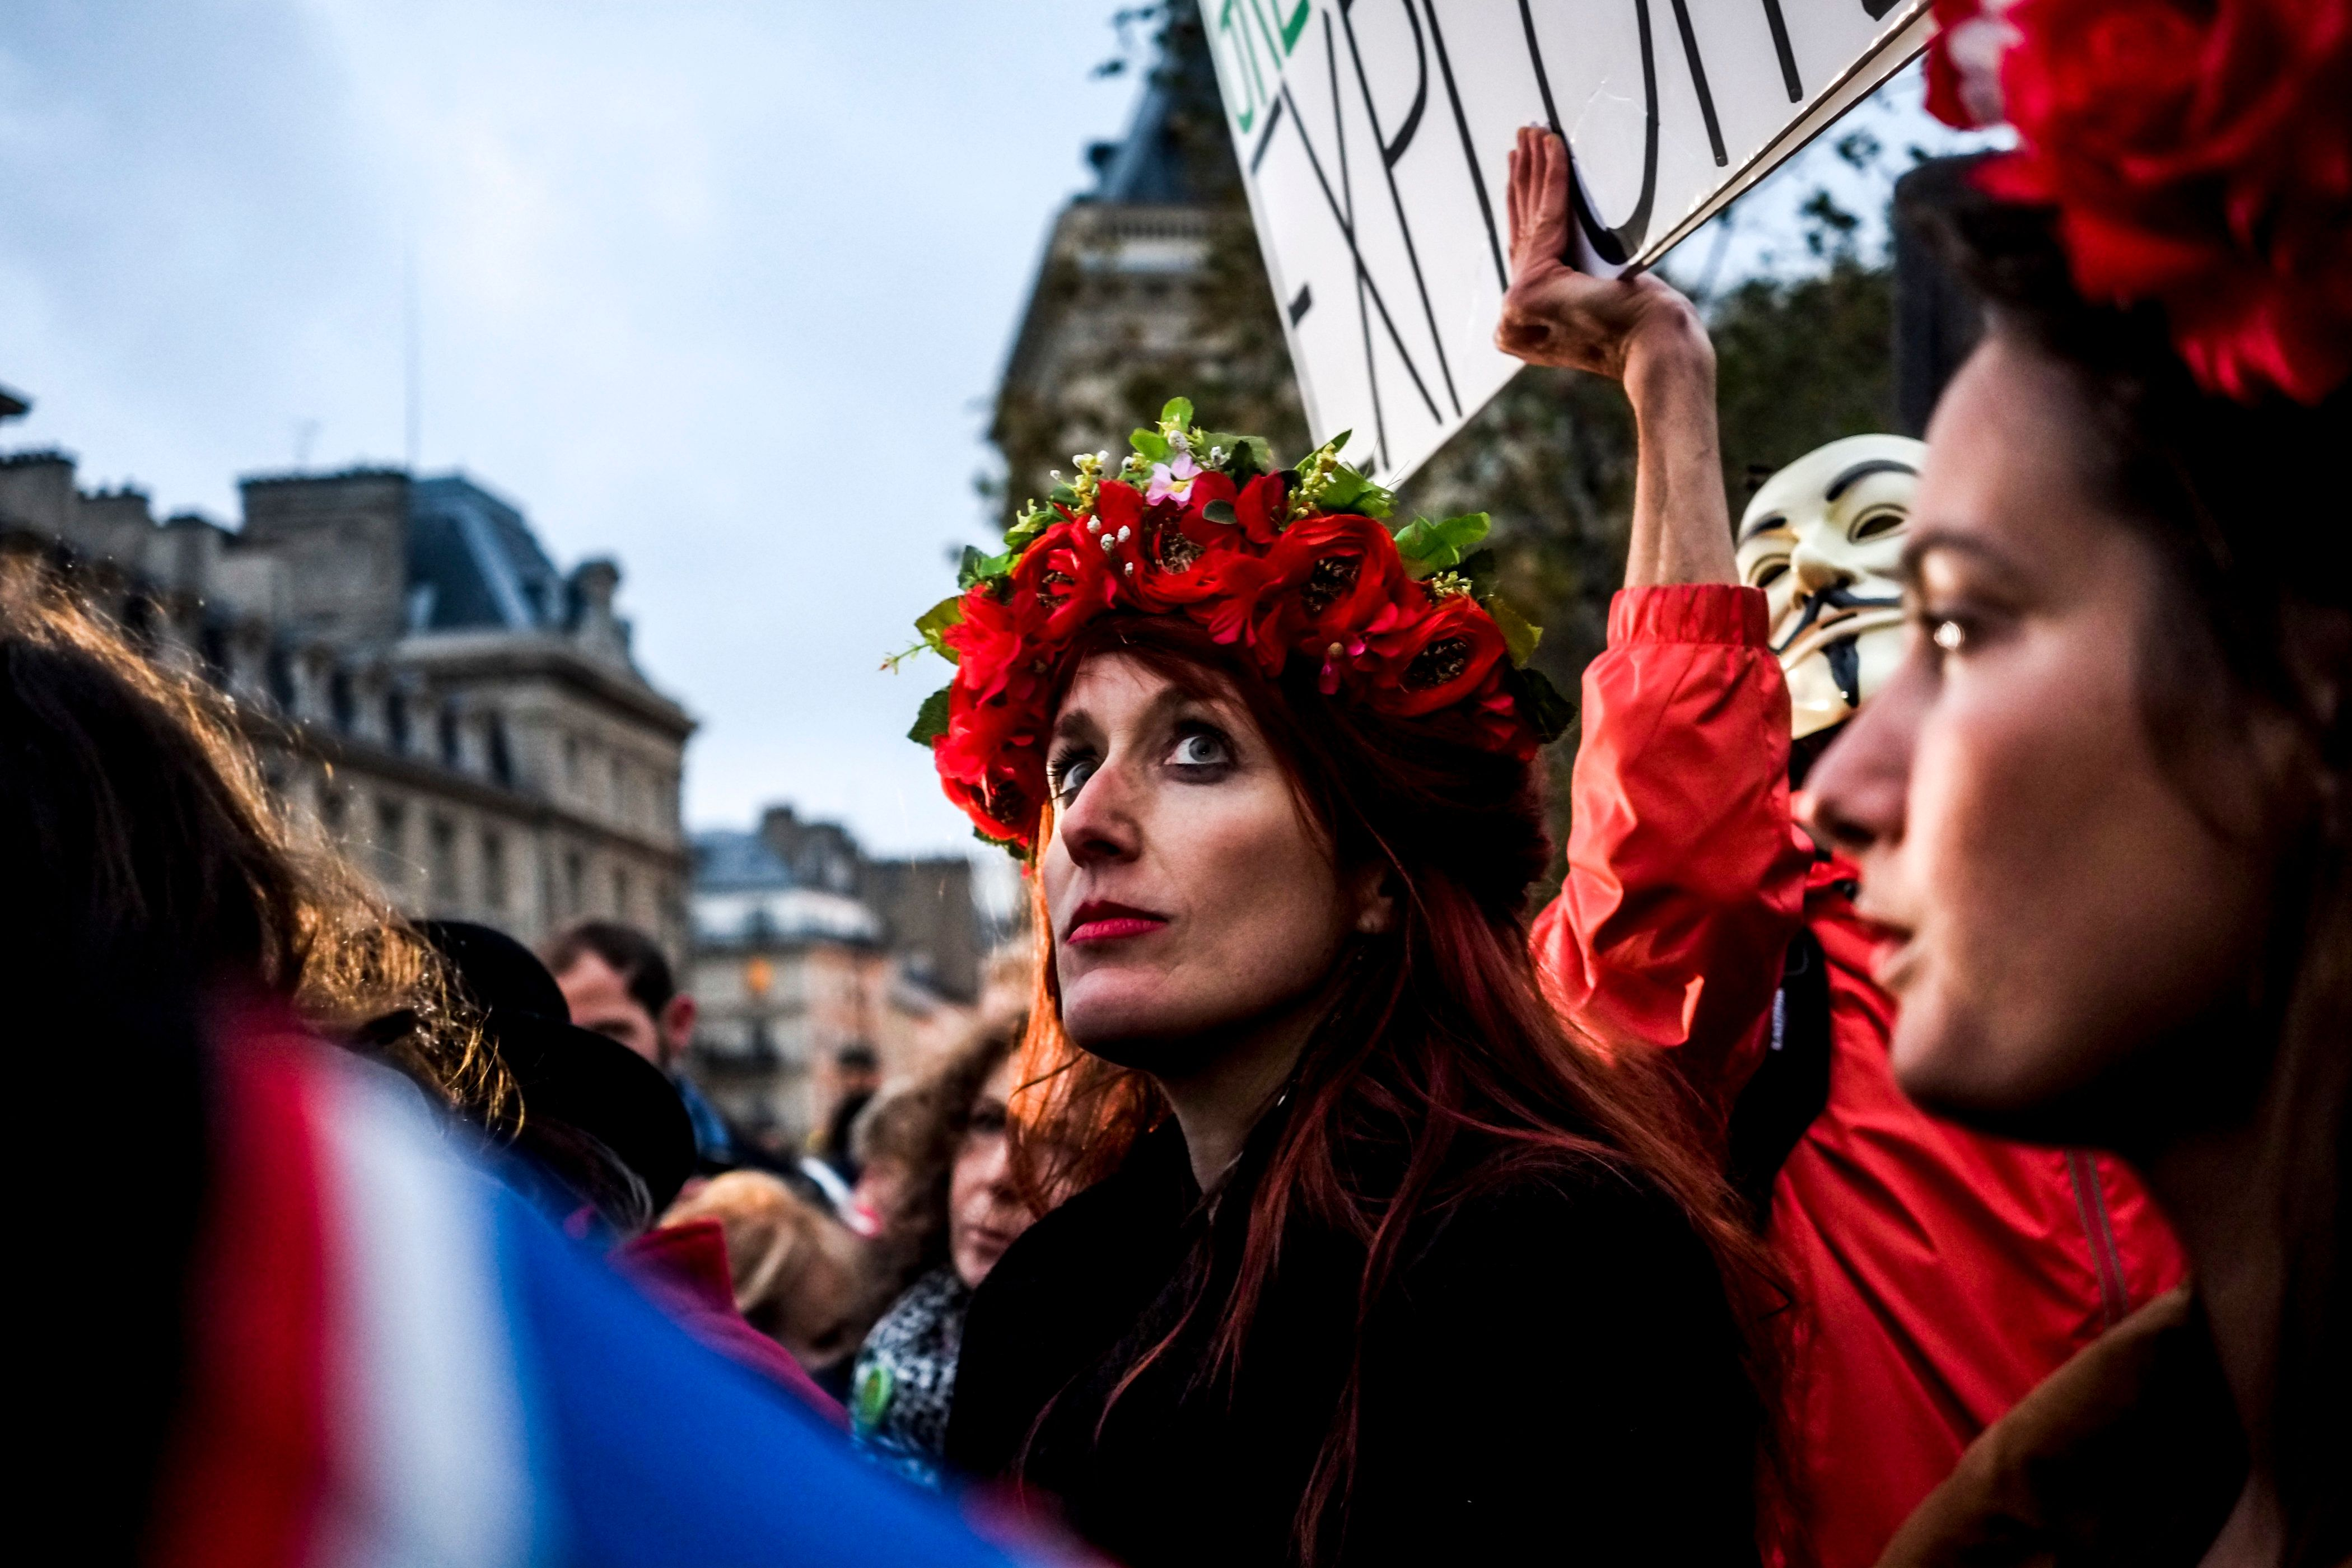 Demonstrators during a protest  for equal pay between men and women, in Paris, France, on November 7, 2016. Some 200 to 300 people of all ages, incuding men, gathered at Paris' Place de la Republique on November 7 to say no to wage inequality, on the symbolic date when men have won as much as women in a year, as calculated by participating femenist groups. (Photo by Michael Bunel/NurPhoto via Getty Images)